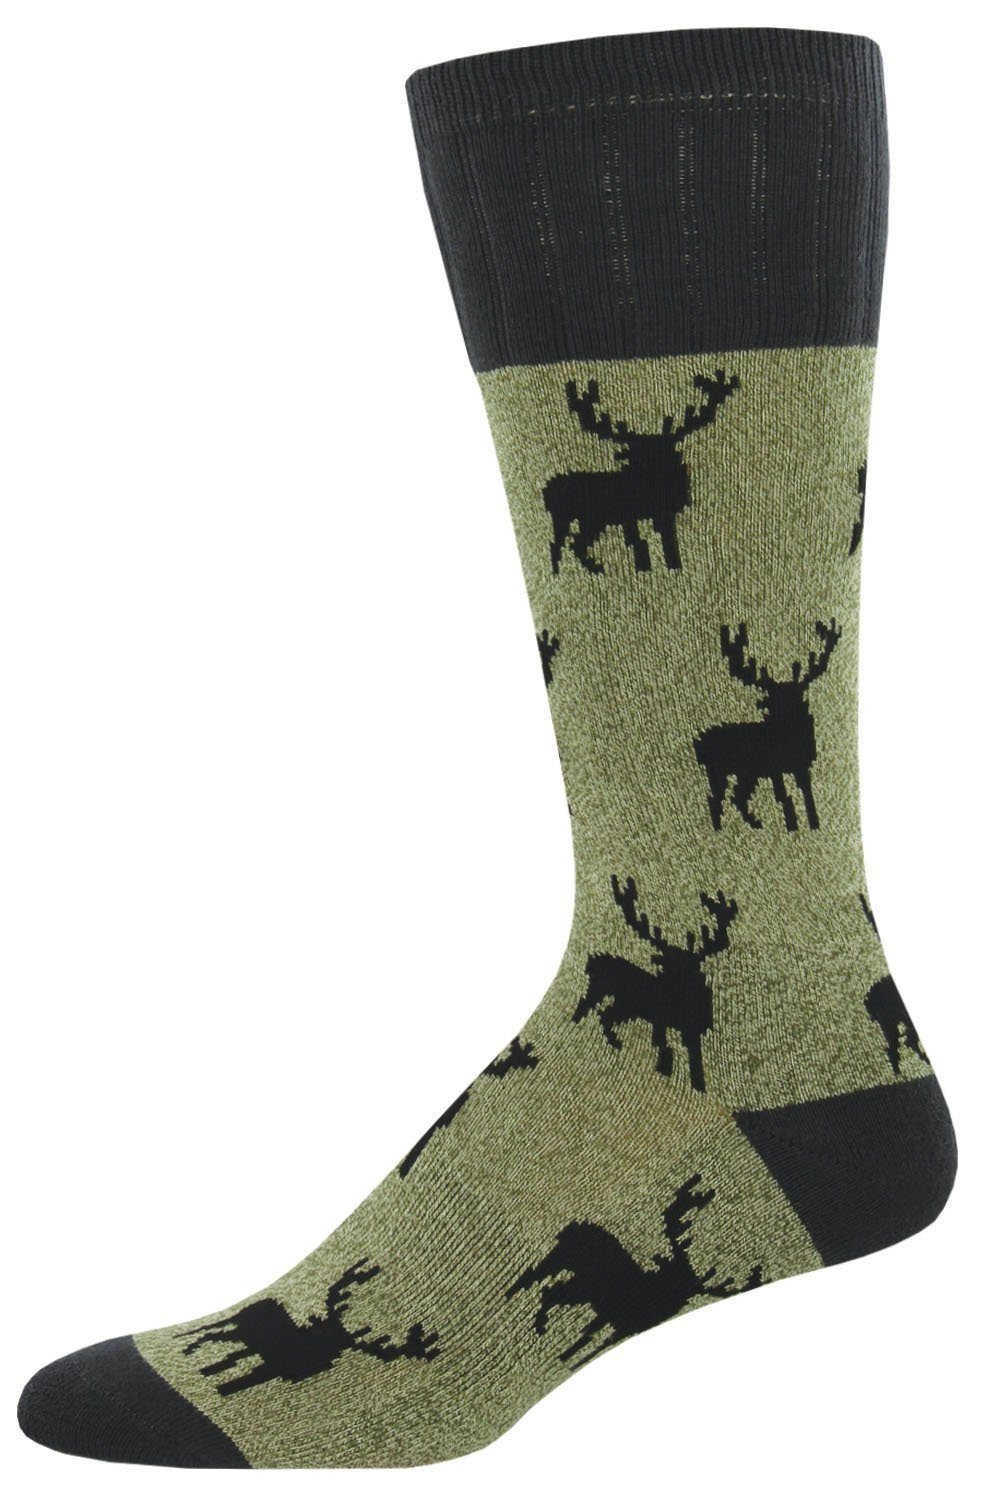 Socksmith - Outlands Stag Boot Socks | Men's - Knock Your Socks Off